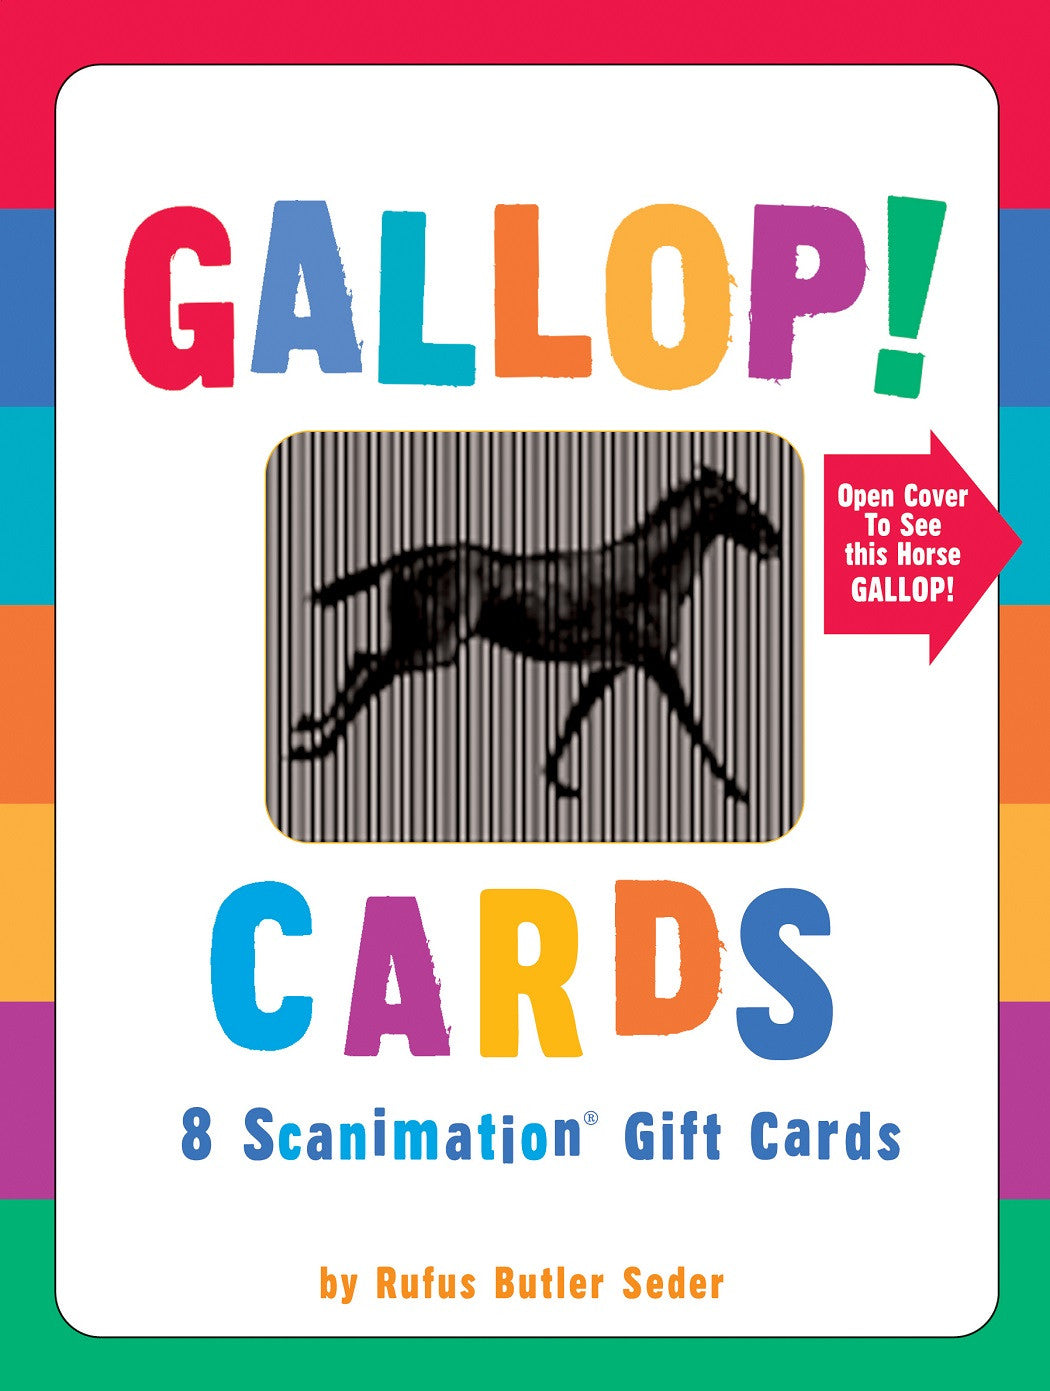 GALLOP! - Set of 8 Scanimation Gift Cards - Off The Wall Toys and Gifts